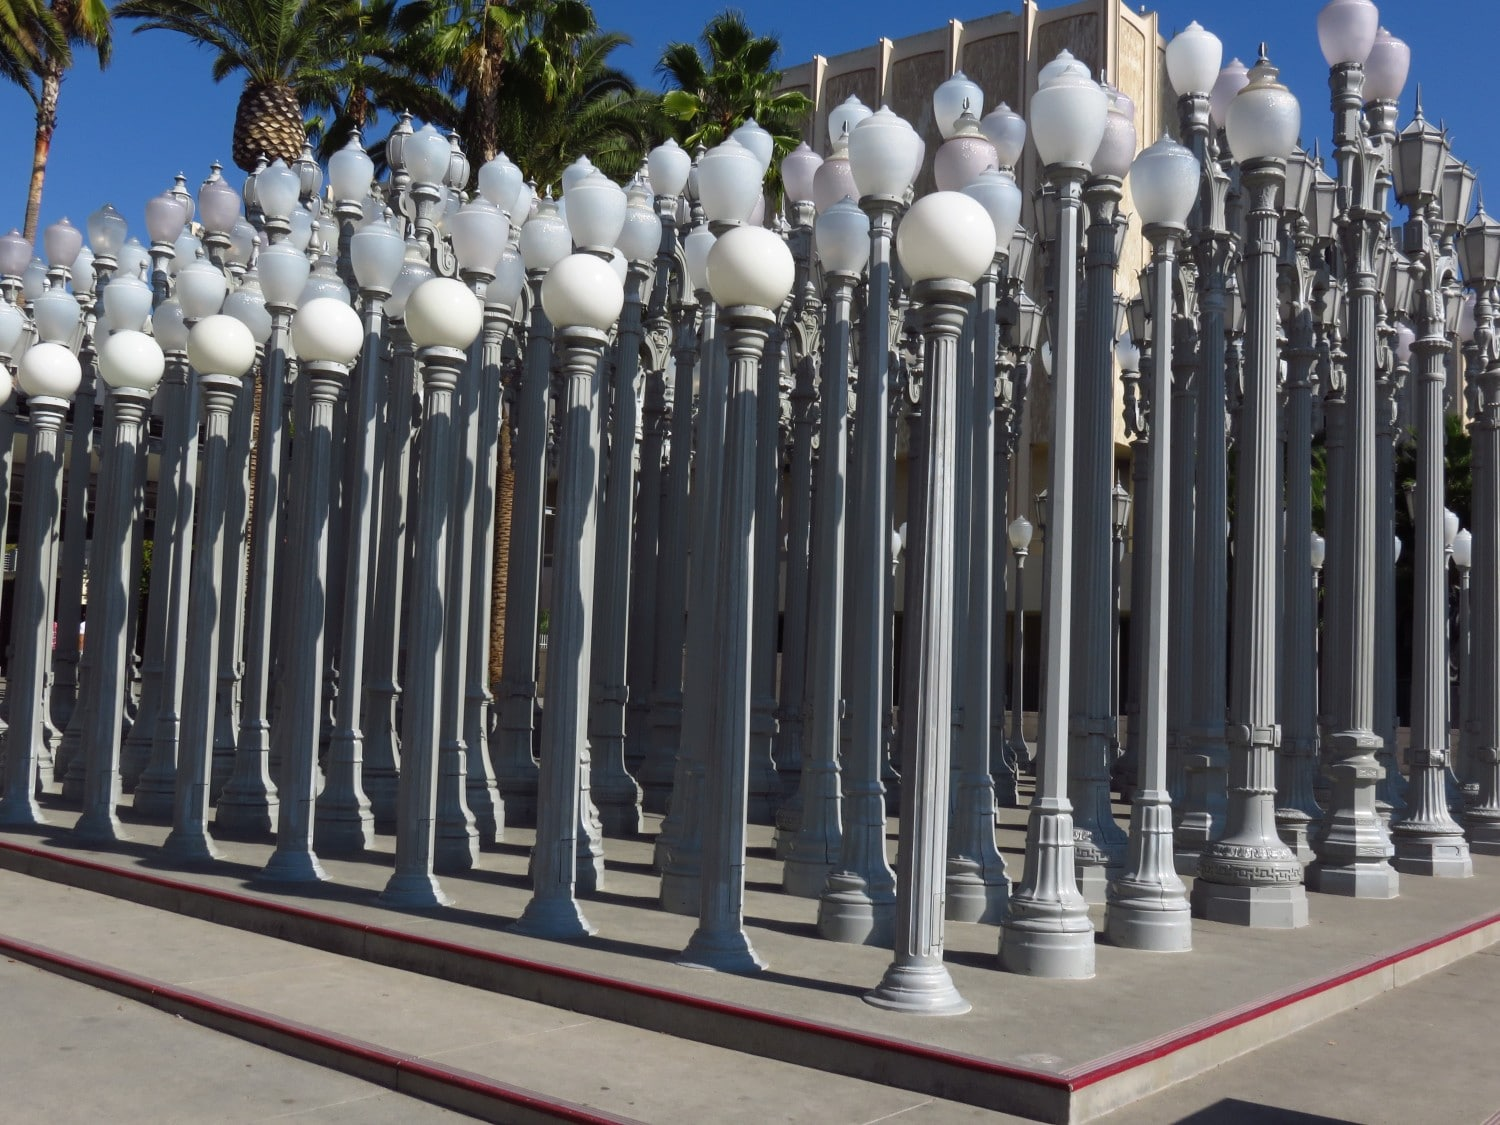 Cool places in Los Angeles LACMA